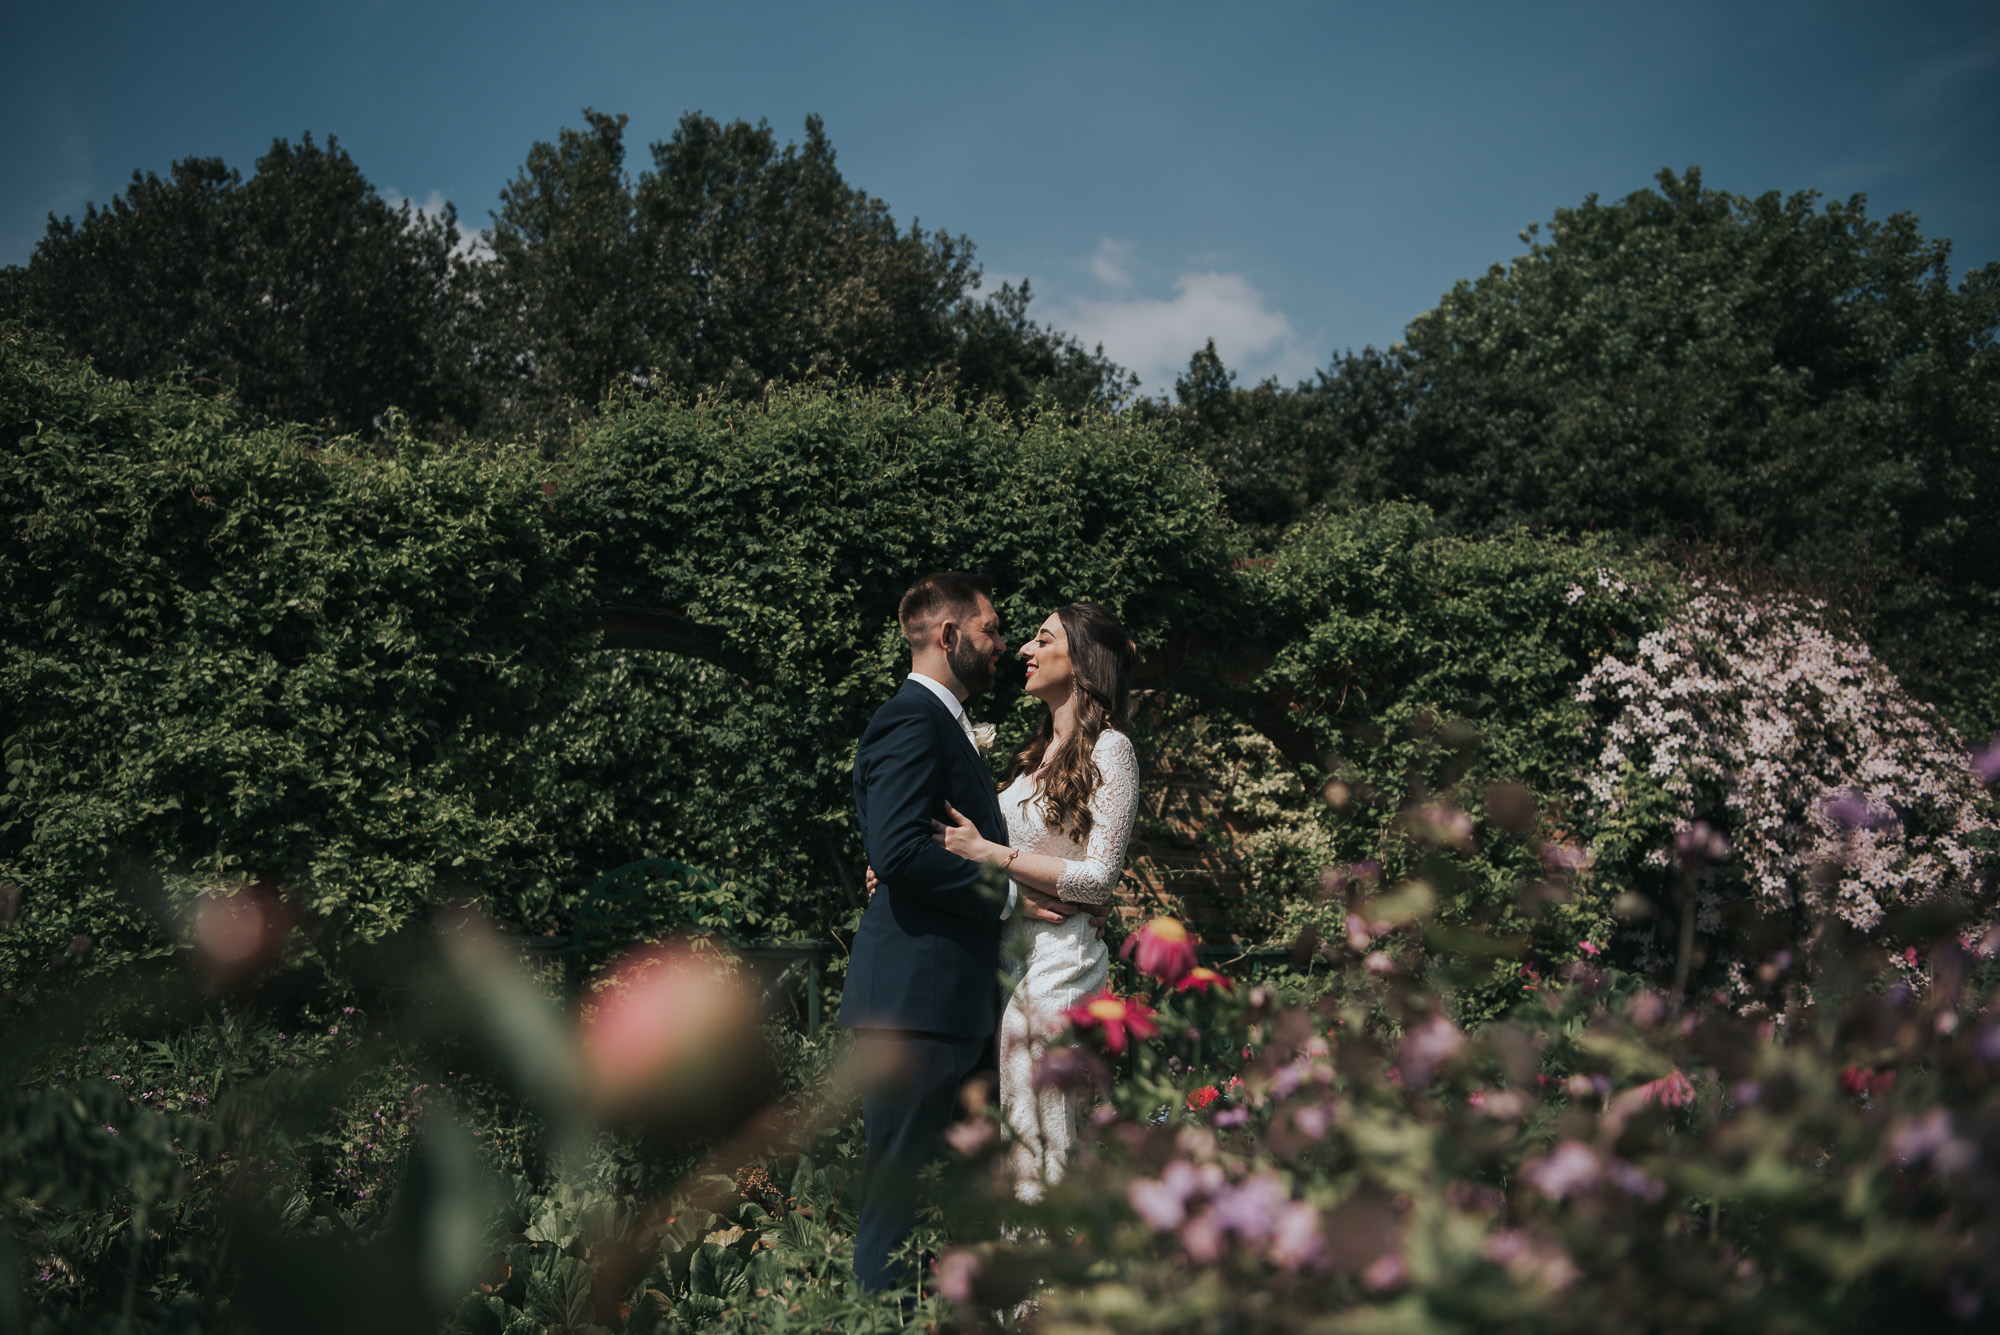 Norton Priory Wedding Photography and Photographer (19 of 23).jpg